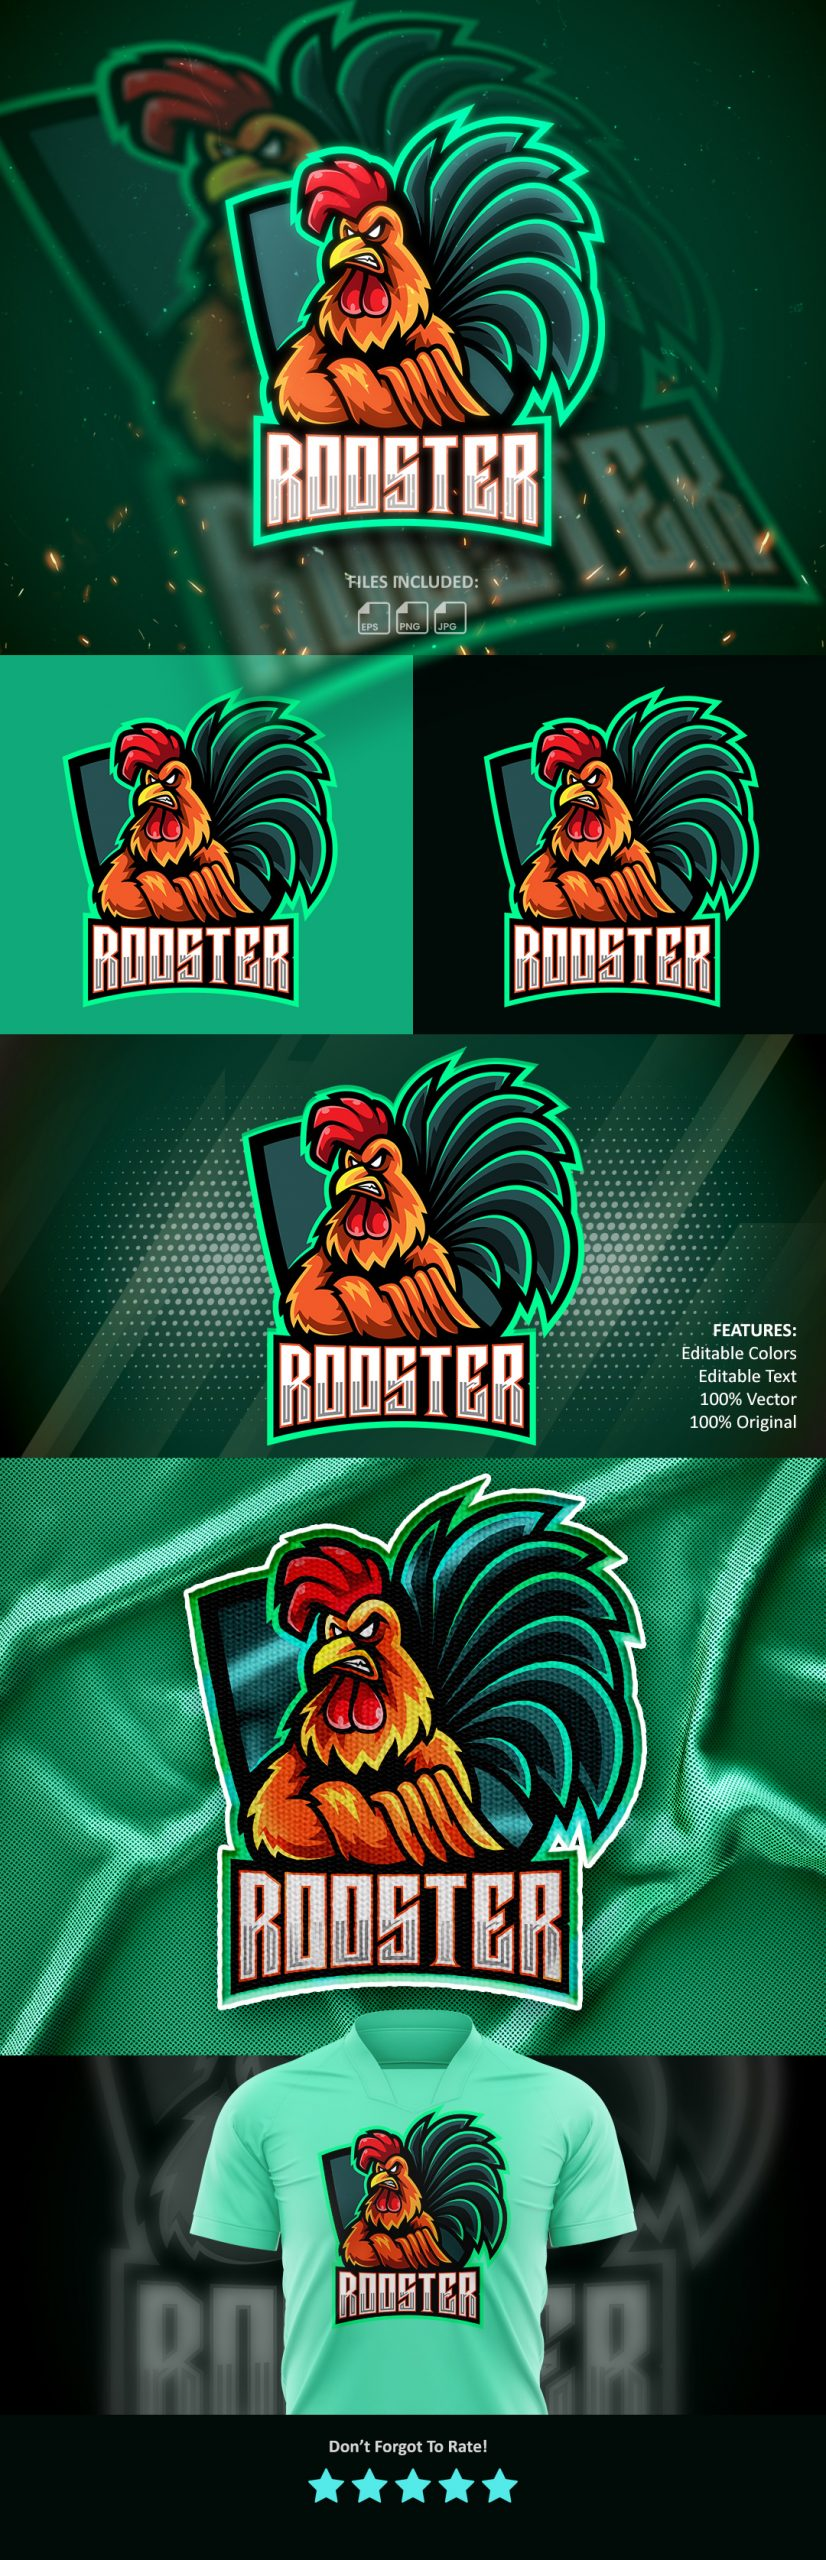 Free-Rooster-Mascot-Logo-Free-Download